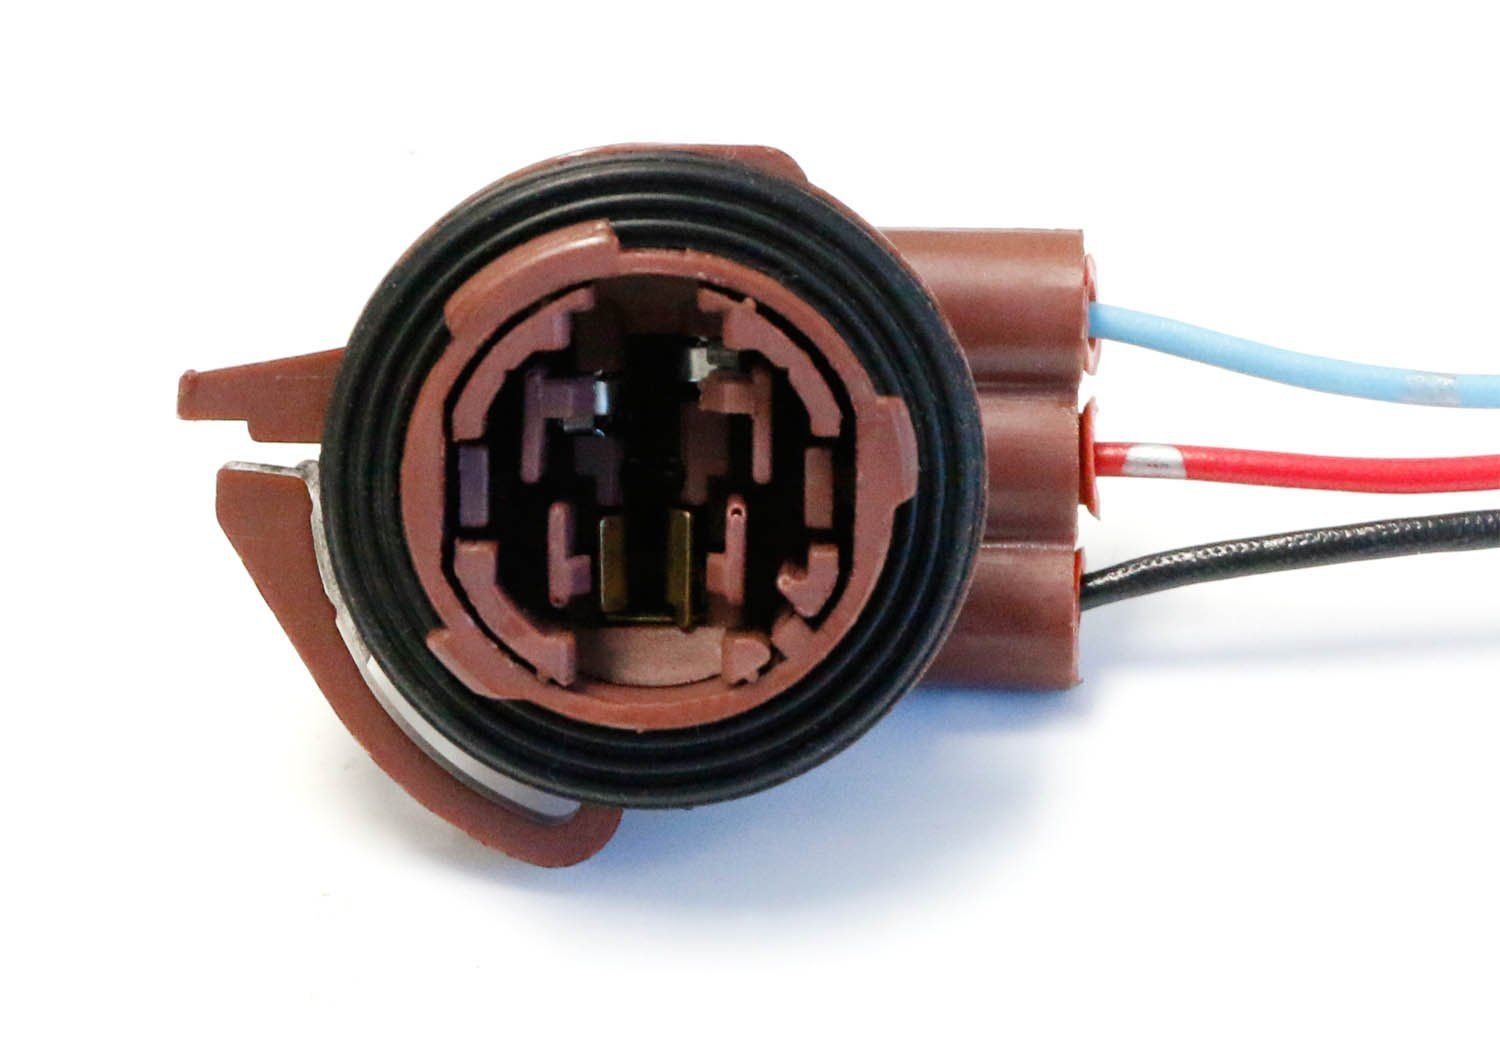 hight resolution of ijdmtoy 2 3156 3157 pre wired harness sockets for repair replacement install led bulbs for turn signal lights drl lamps or brake tail lights sockets